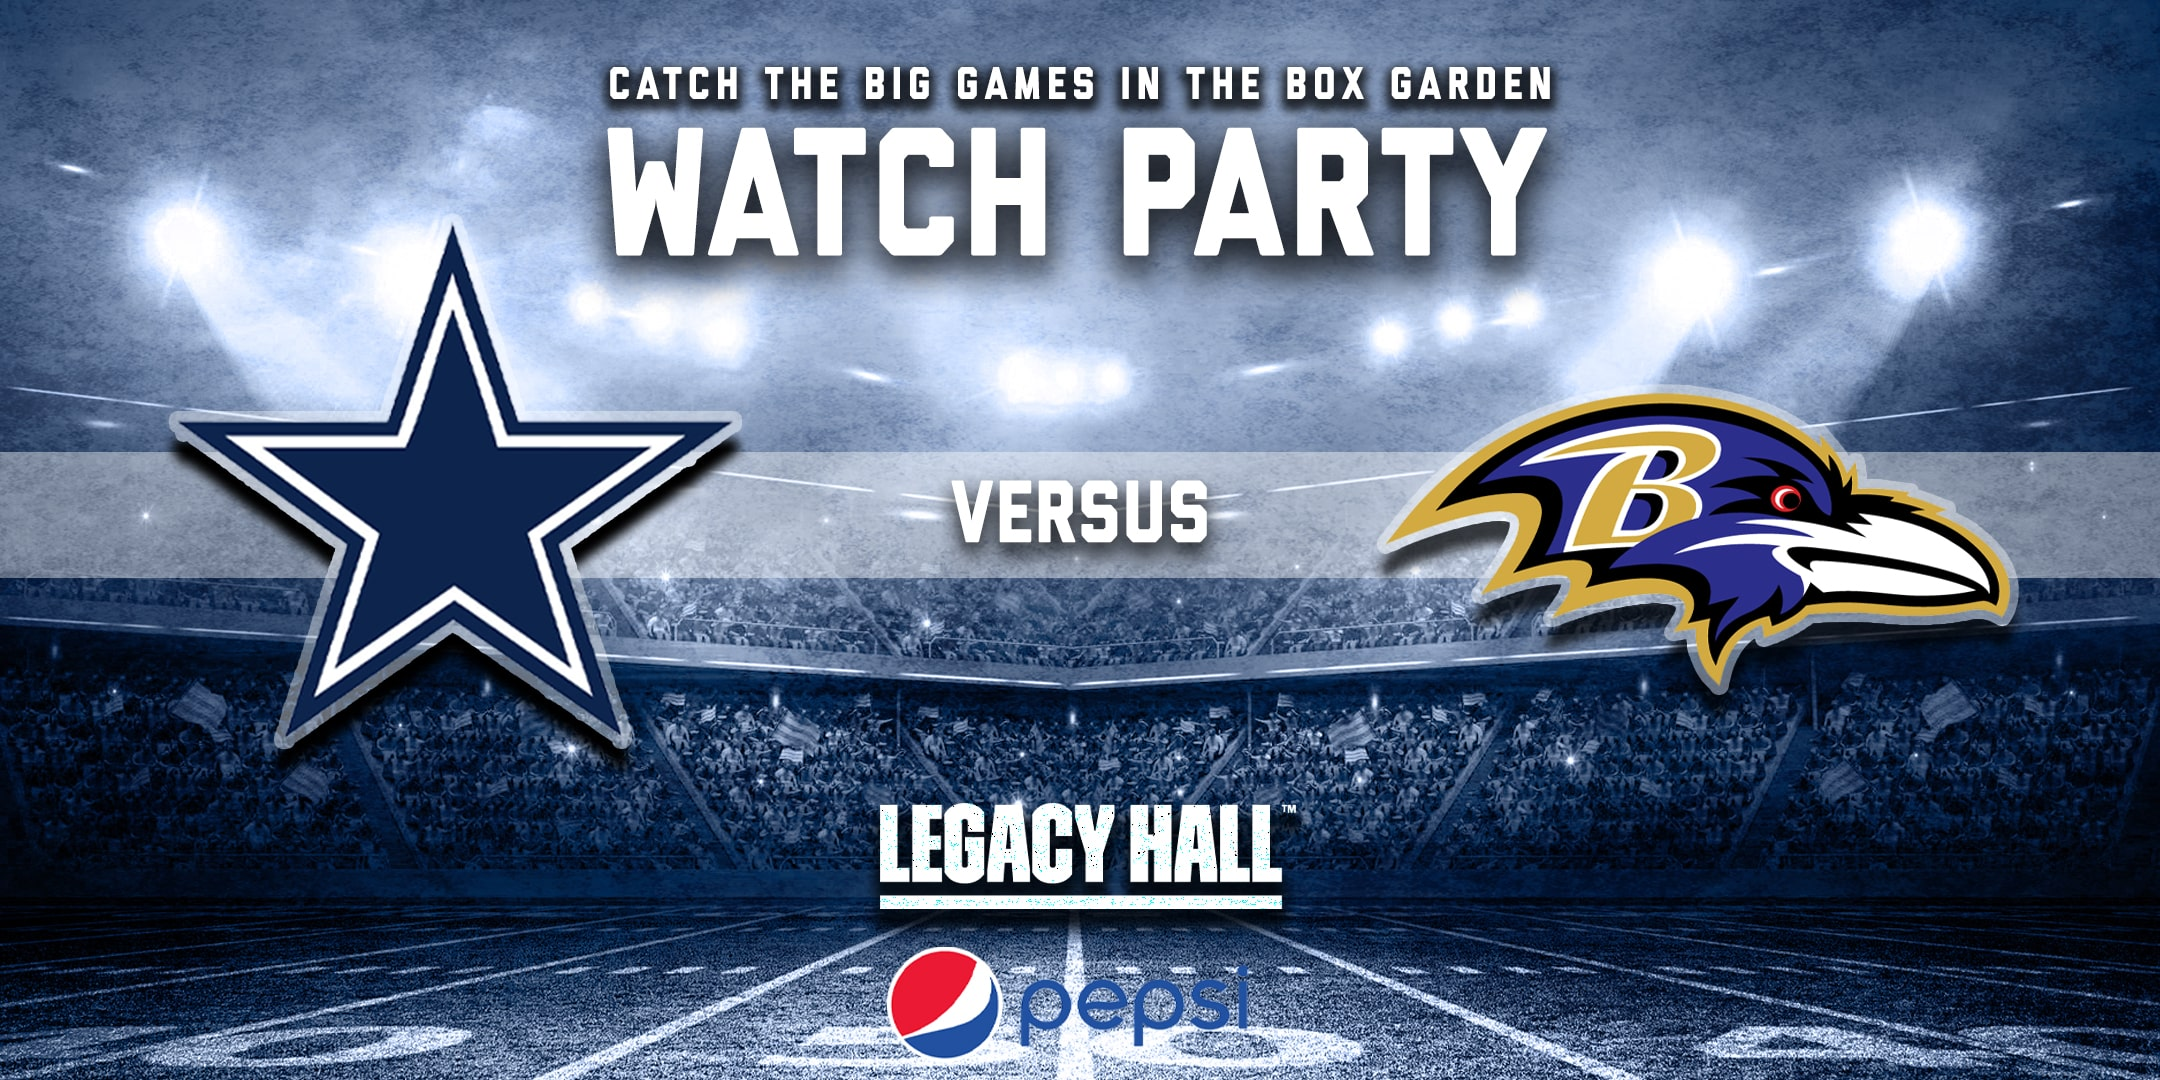 Promo image of Cowboys vs. Ravens Watch Party